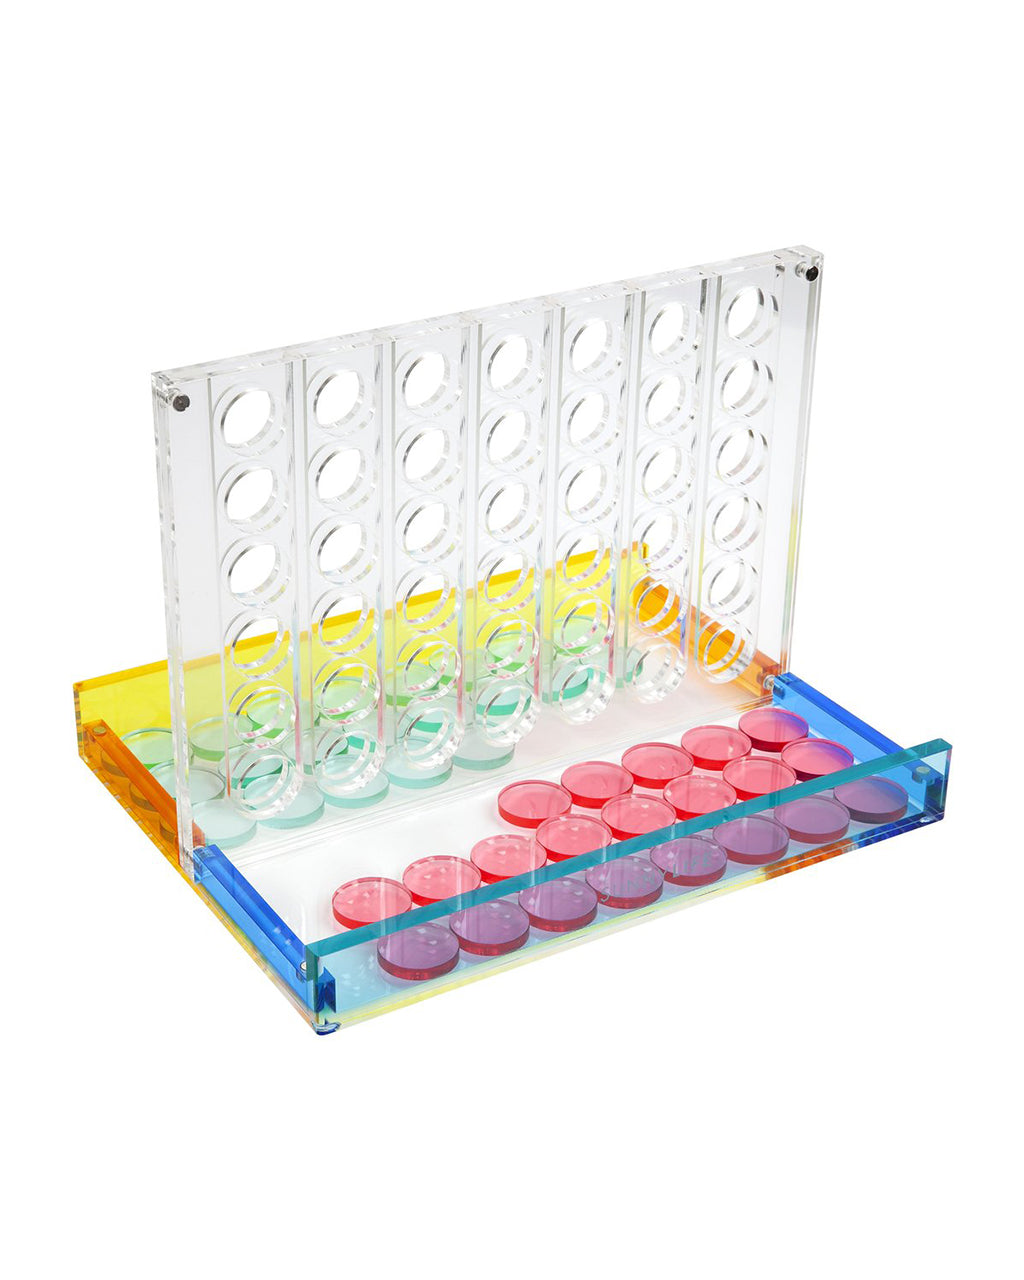 acrylic 4 in a row game with rainbow color design